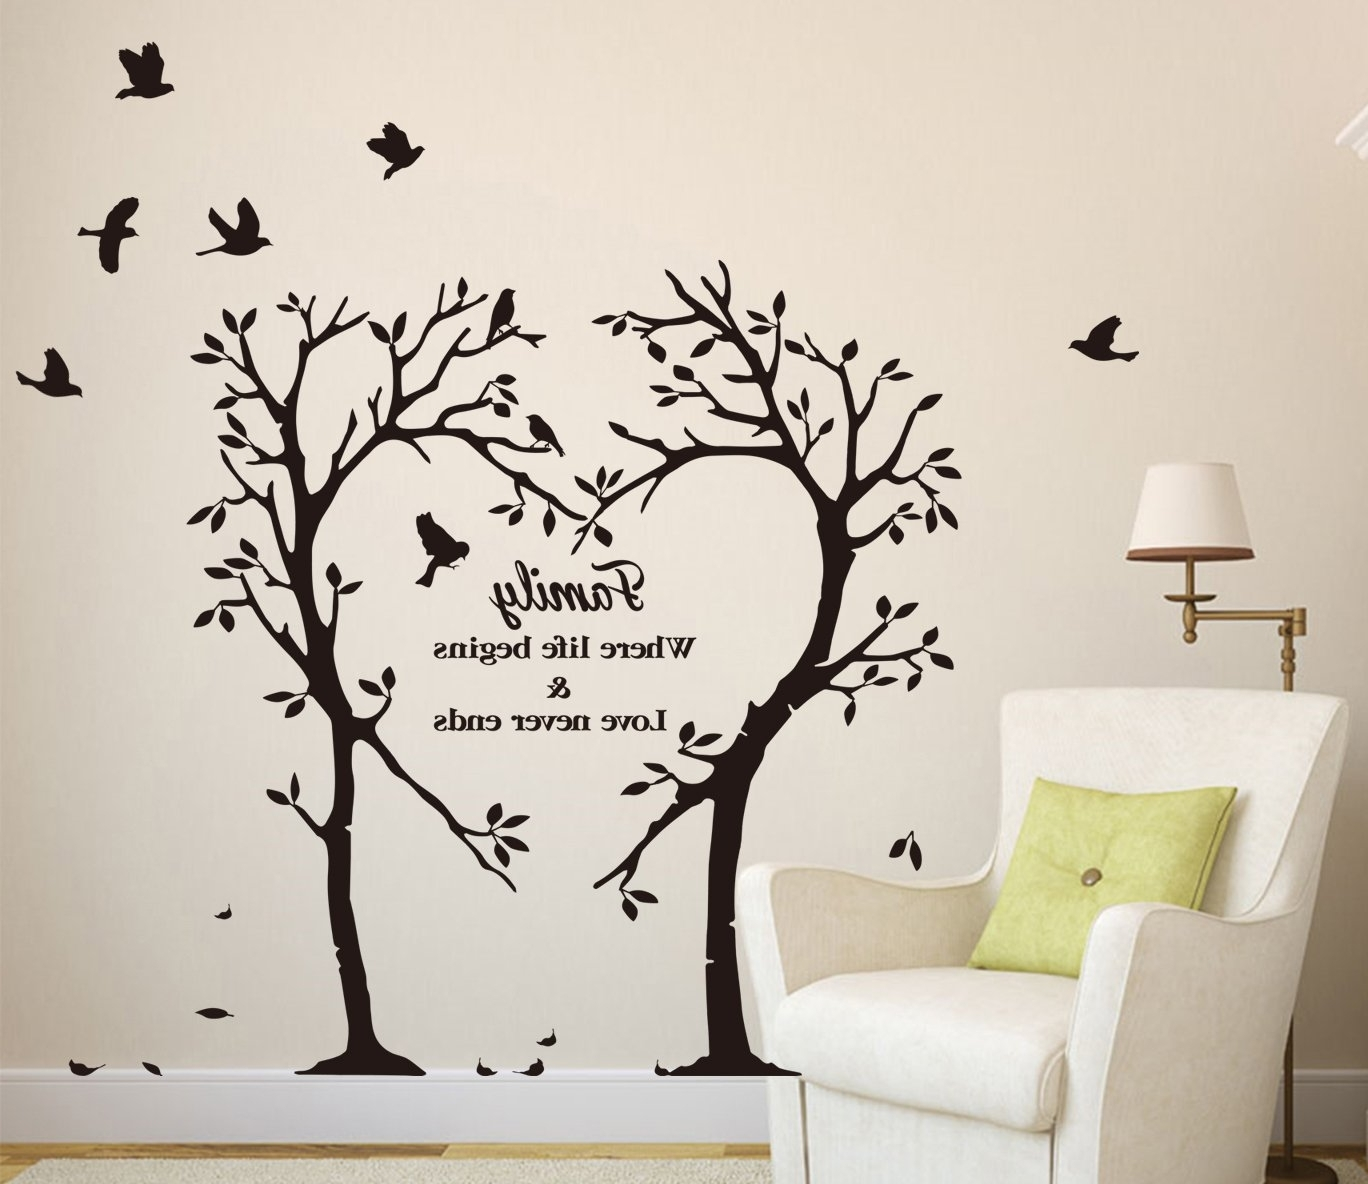 Large Family Inspirational Love Tree Wall Art Sticker, Wall Sticker In Current Tree Wall Art (View 5 of 15)